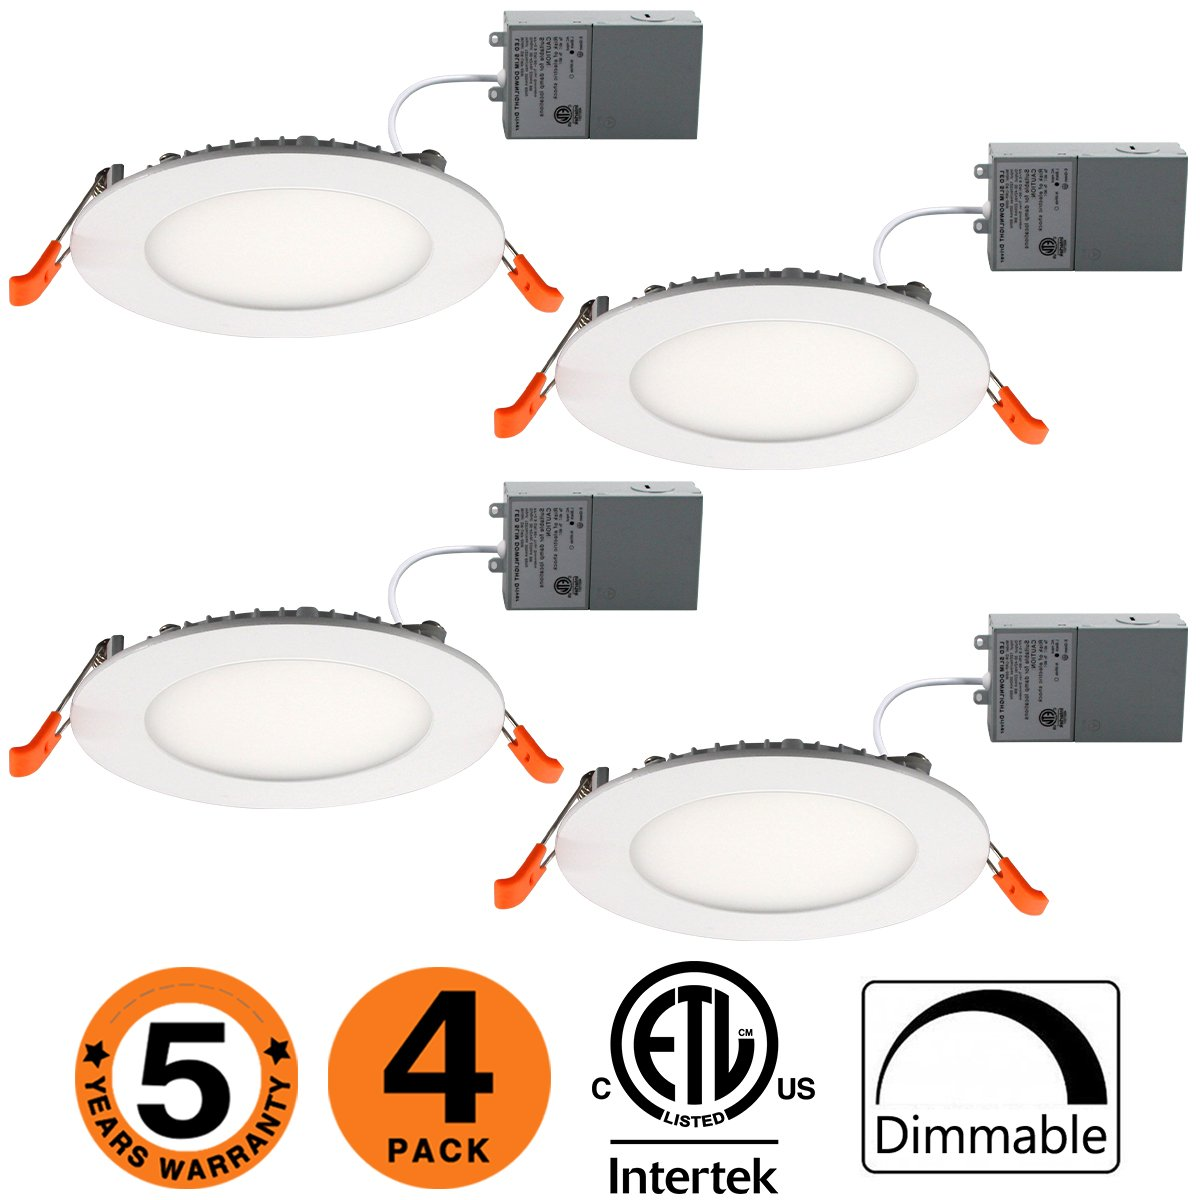 Dimmable Slim Led Downlight 4 inch 9W (65W Equivalent) ETL Listed 600LM 3000K Junction Box Recessed Lighting E-4 Pack-30K